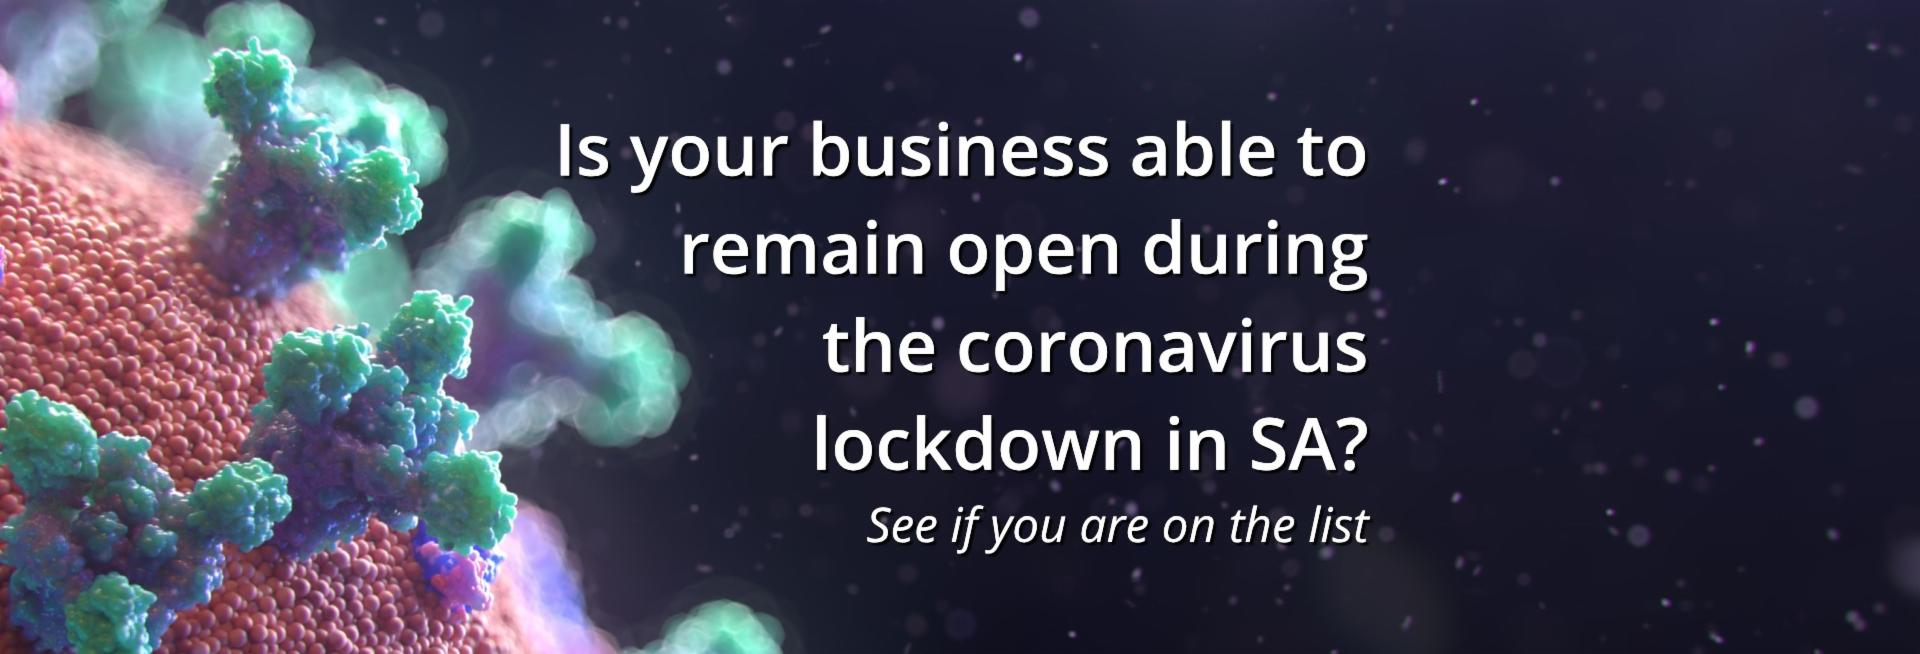 Is your business able to remain open during the Coronavirus lockdown in SA? See if you are on the list.